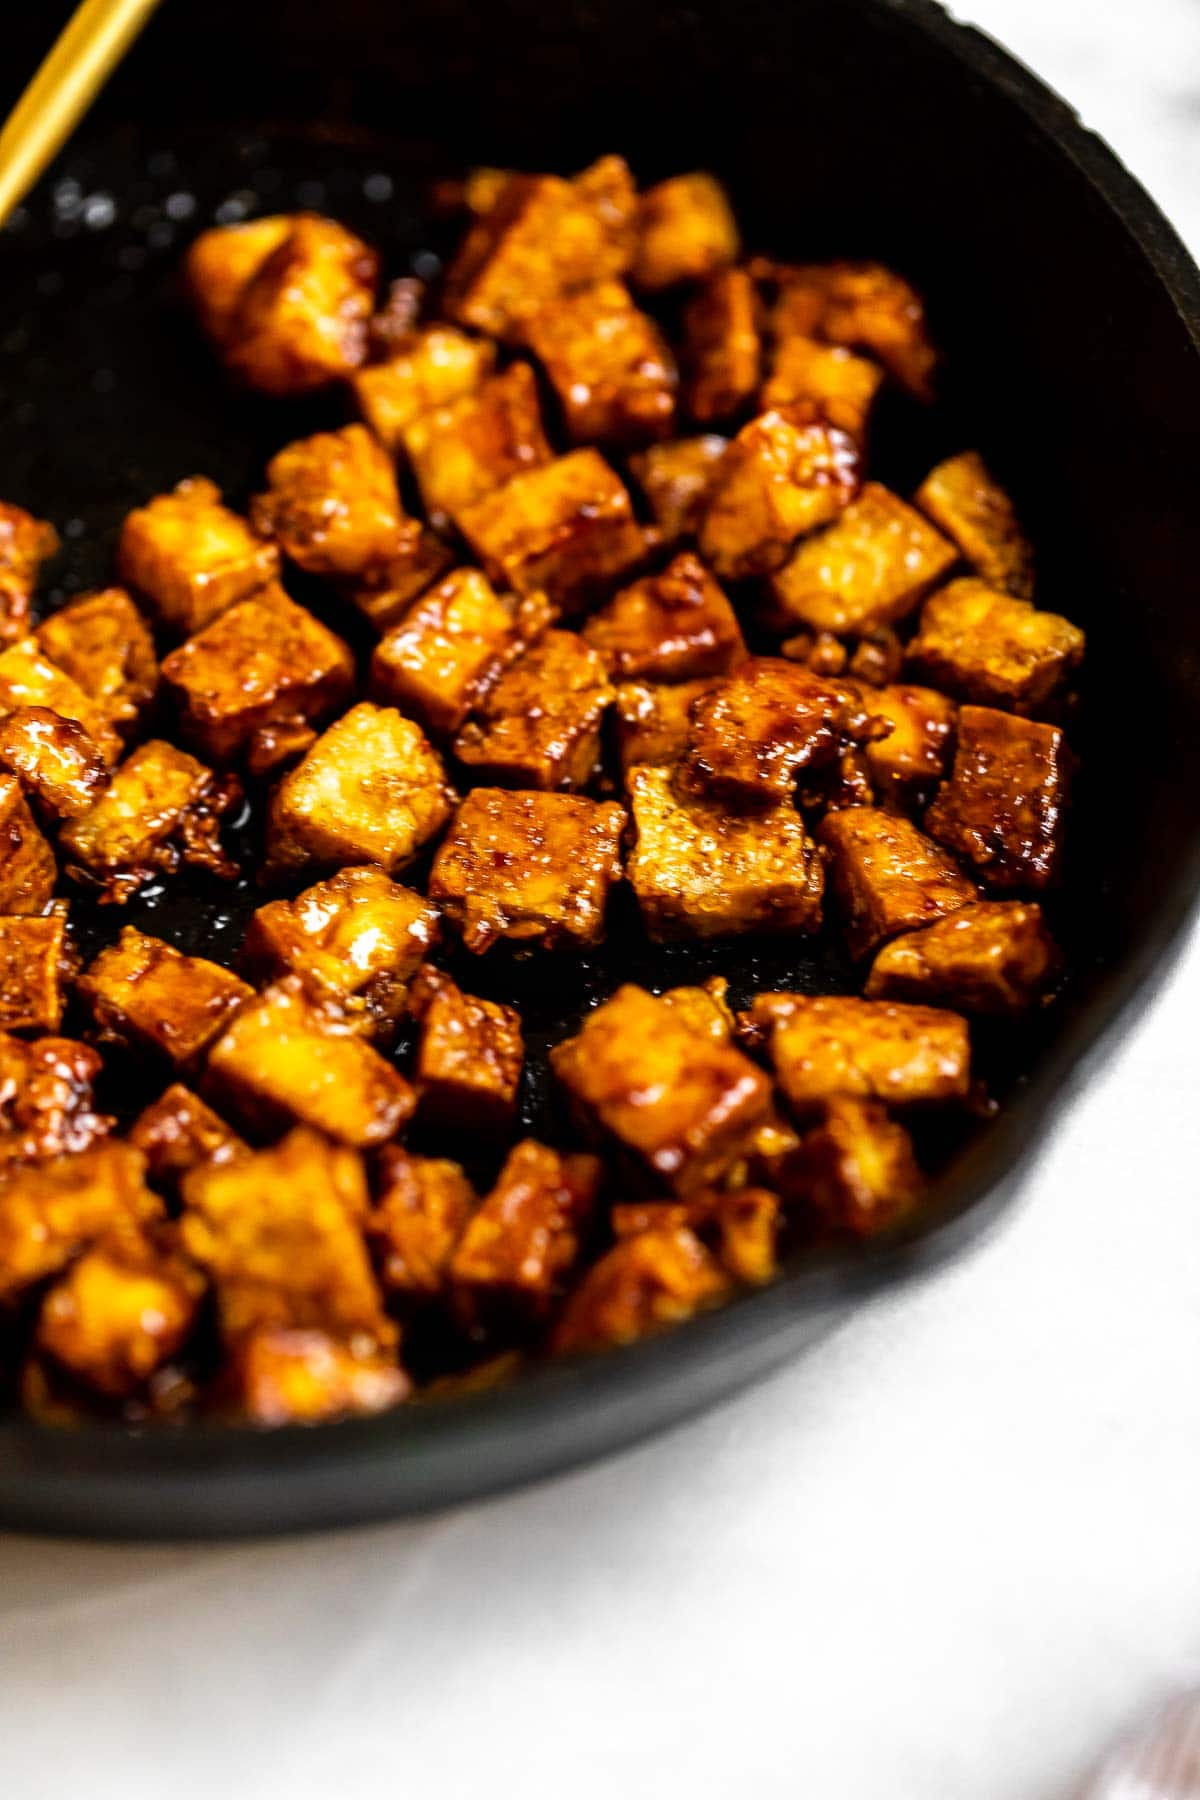 Pan fried tofu in a pan with soy sauce on top.